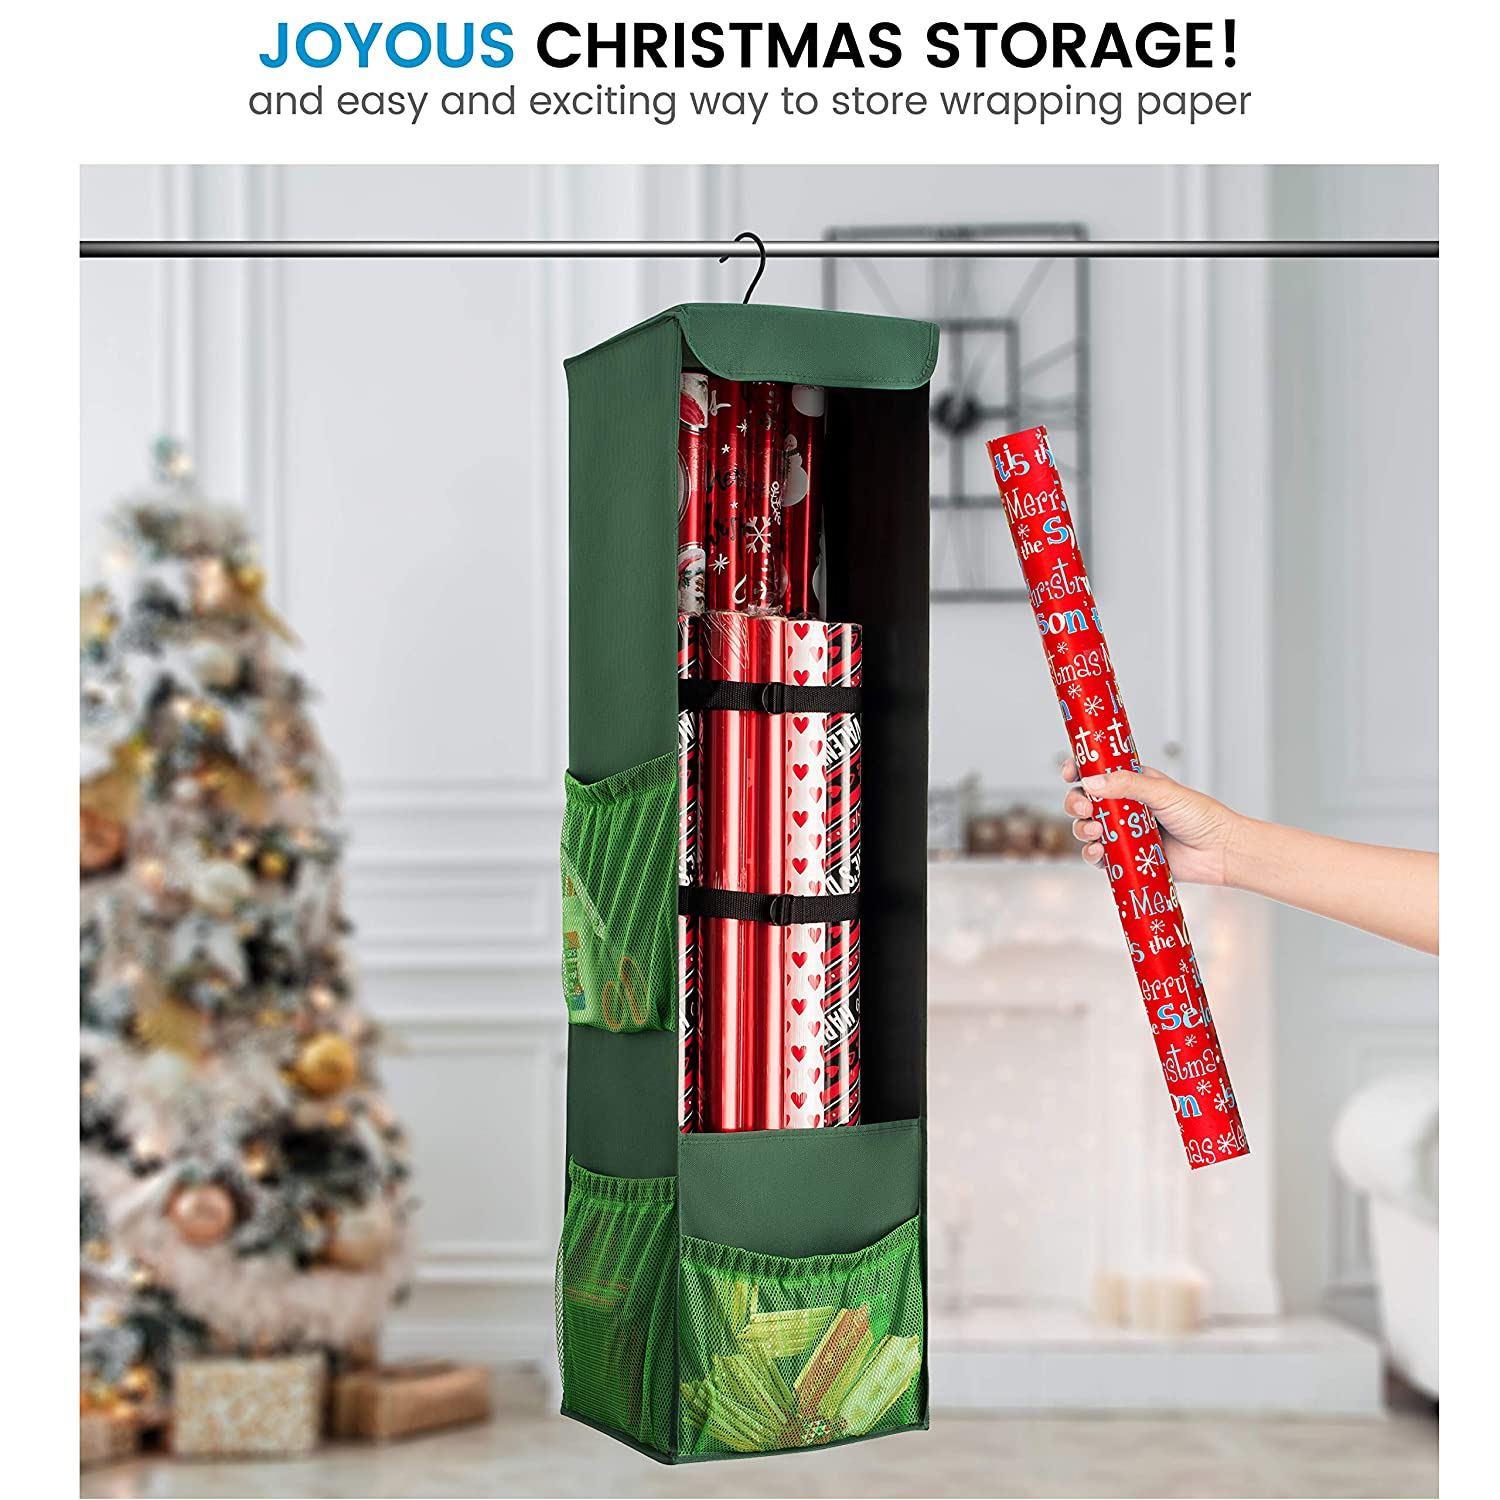 Zober Christmas Hanging Gift Wrap Organizer Stores Up To 20 Rolls ...